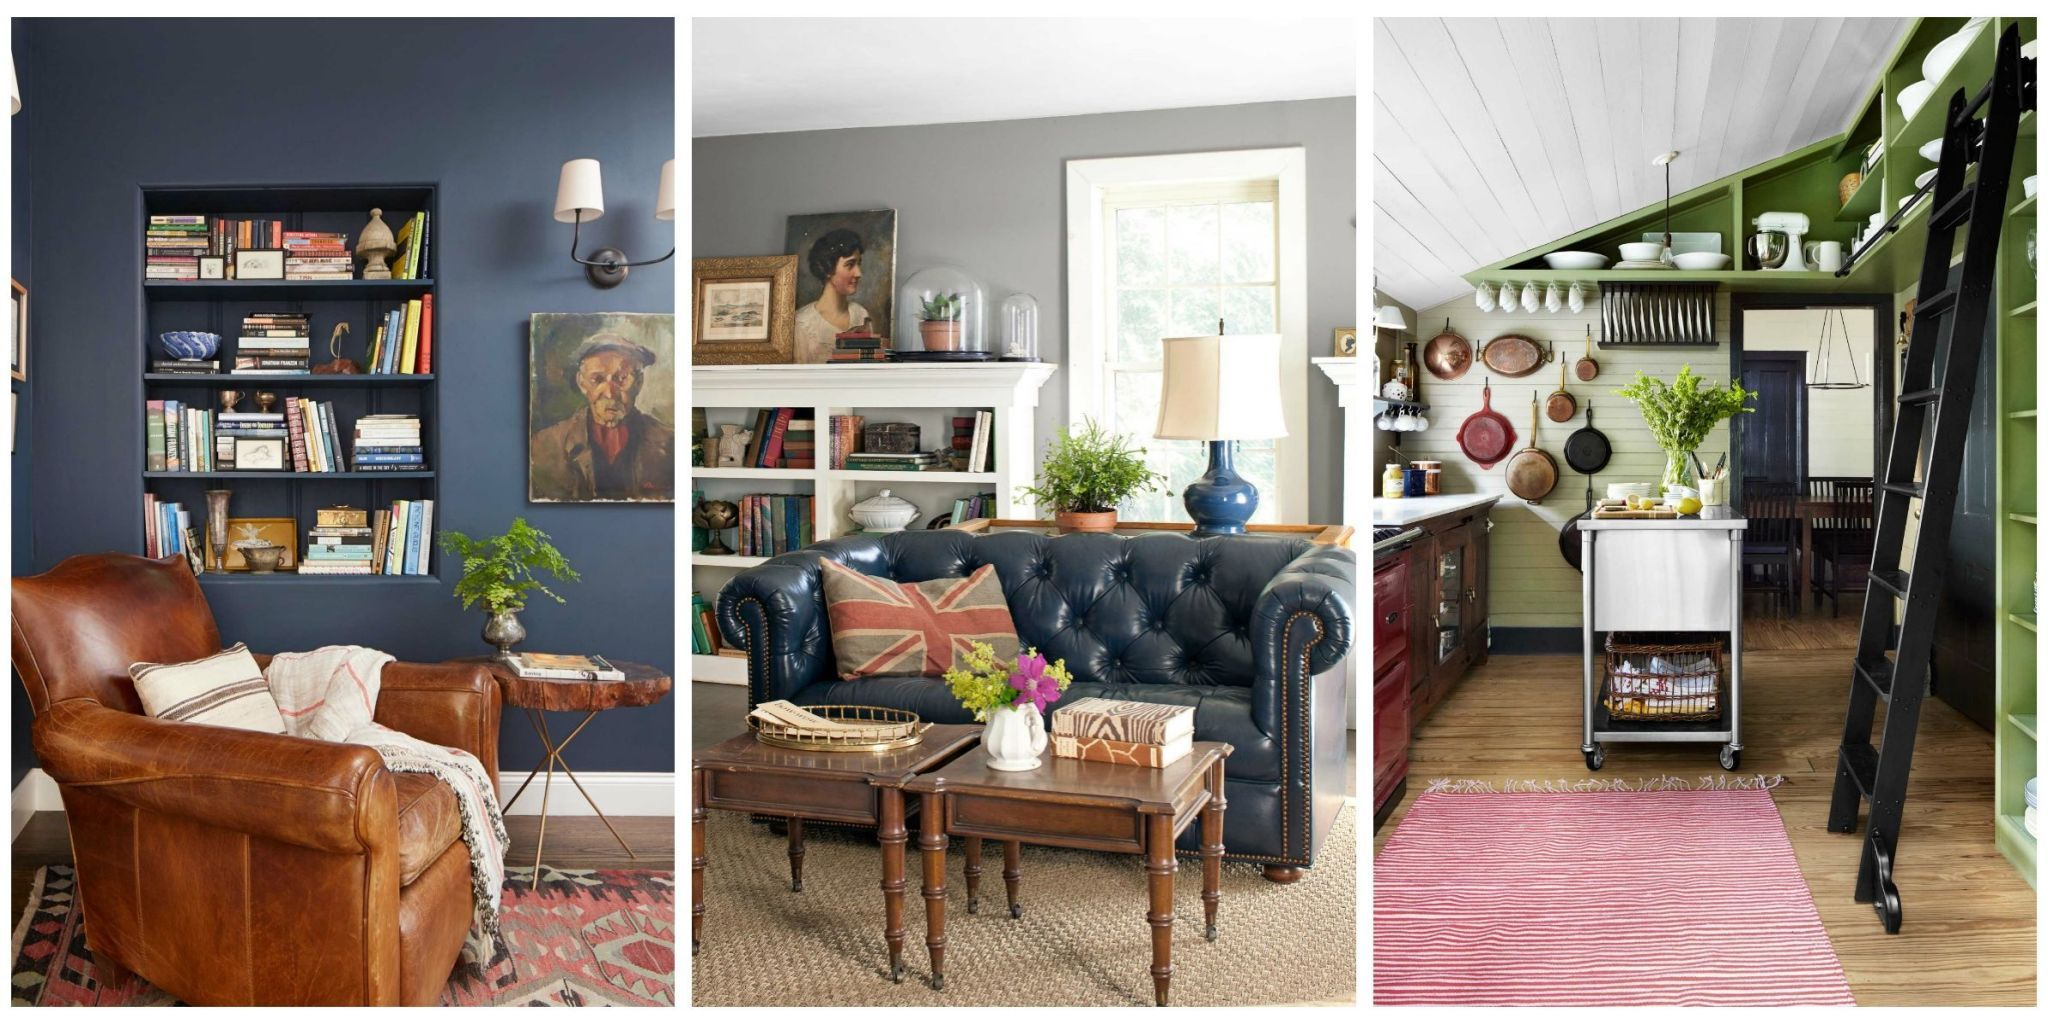 Bon Give Your Home That Warm And Cozy Feeling With These Paint Ideas.